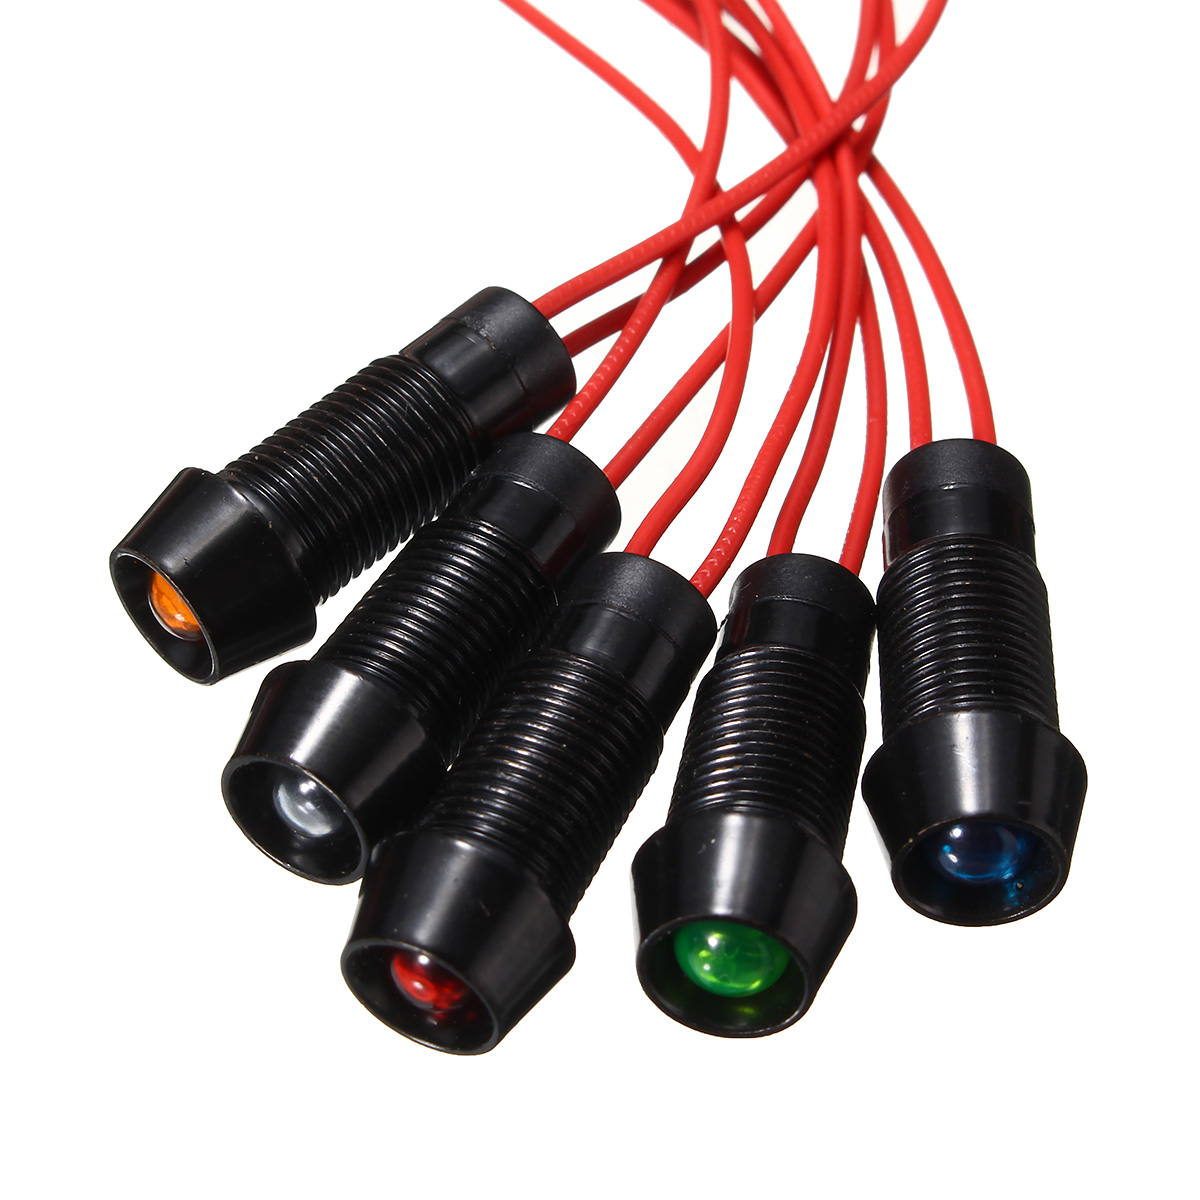 8mm LED Indicator Light Lamp Dash Directional Car Truck Motorcycle Boat Luminous Wire Indicator Signals Light